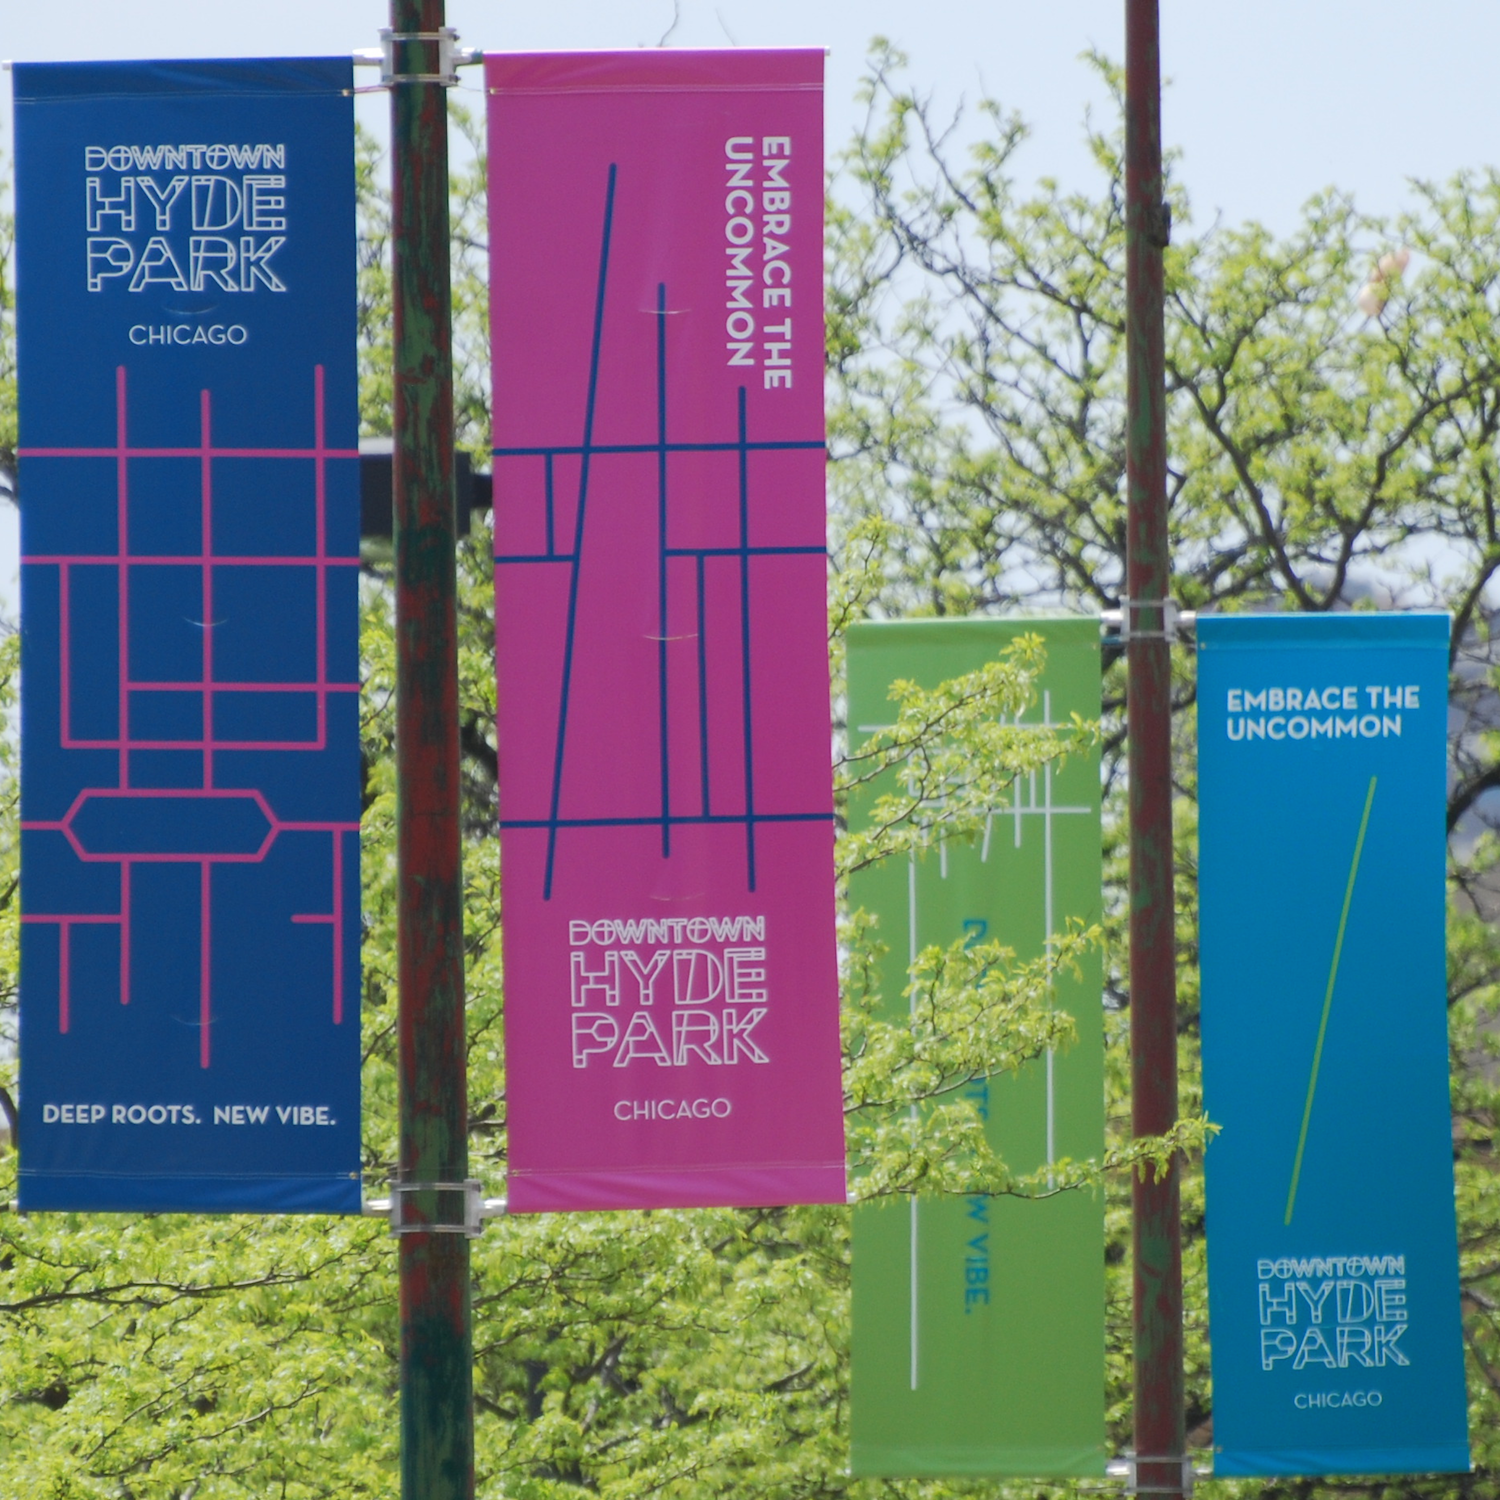 Outdoor banners with the Downtown Hyde Park new brand logo